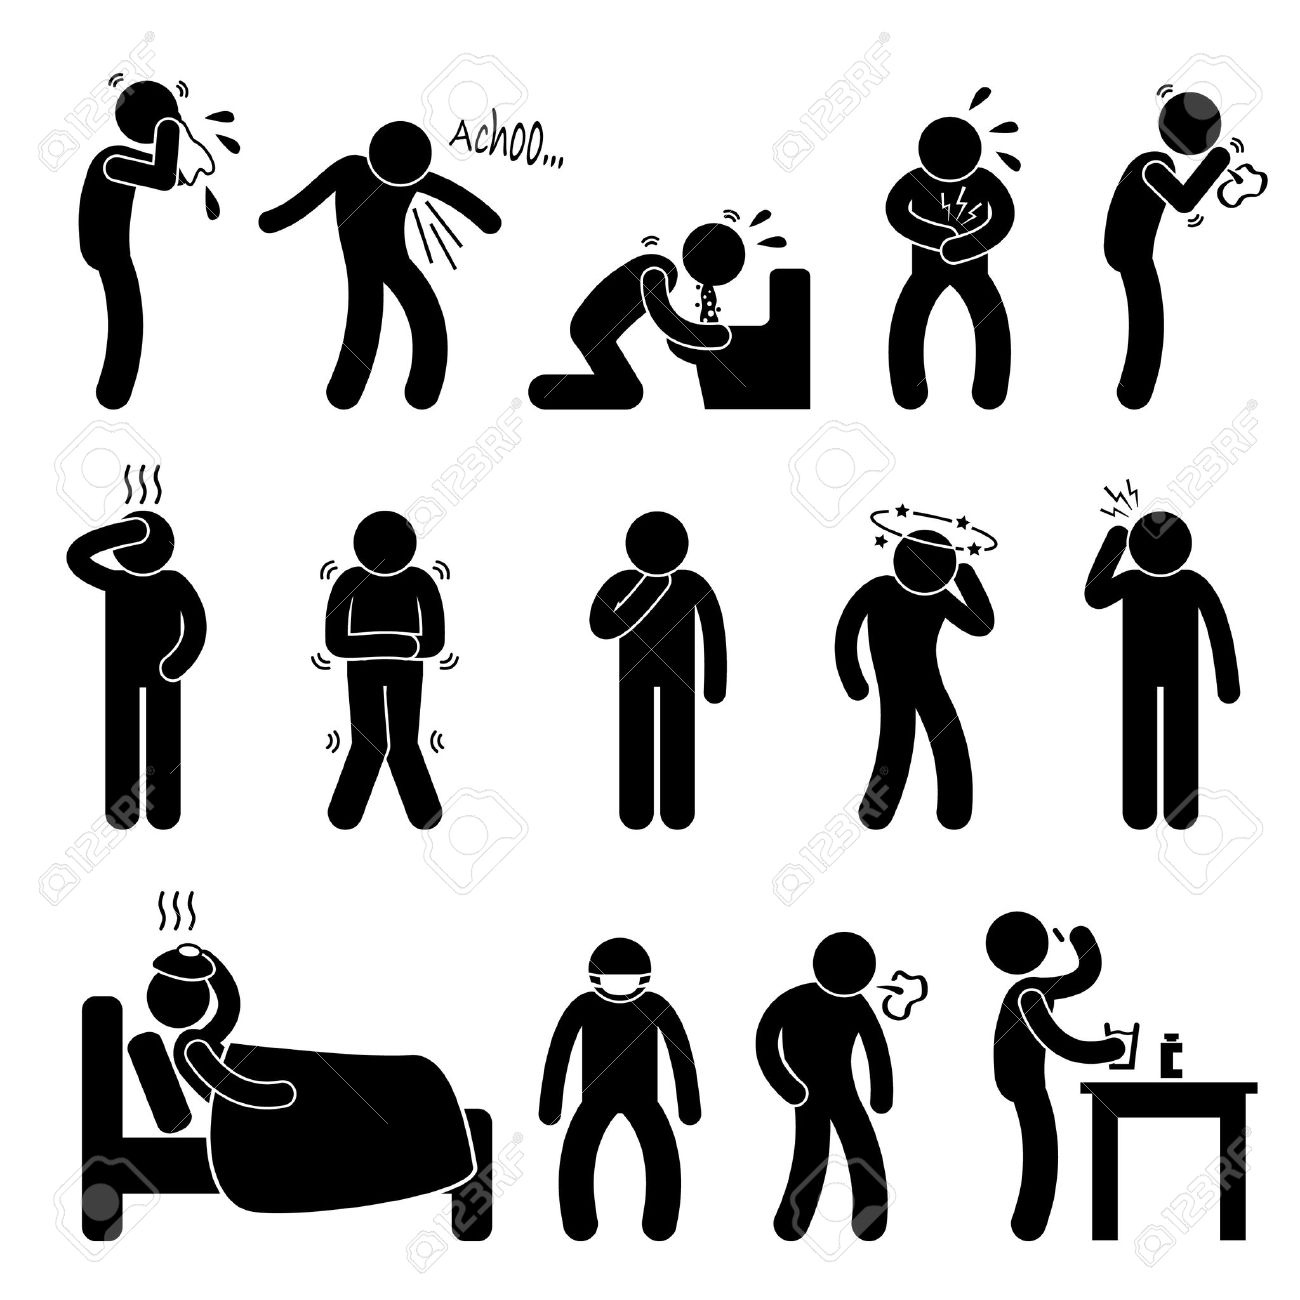 Sick ill Fever Flu Cold Sneeze Cough Vomit Disease Stick Figure Pictogram Icon Stock Vector - 18797522